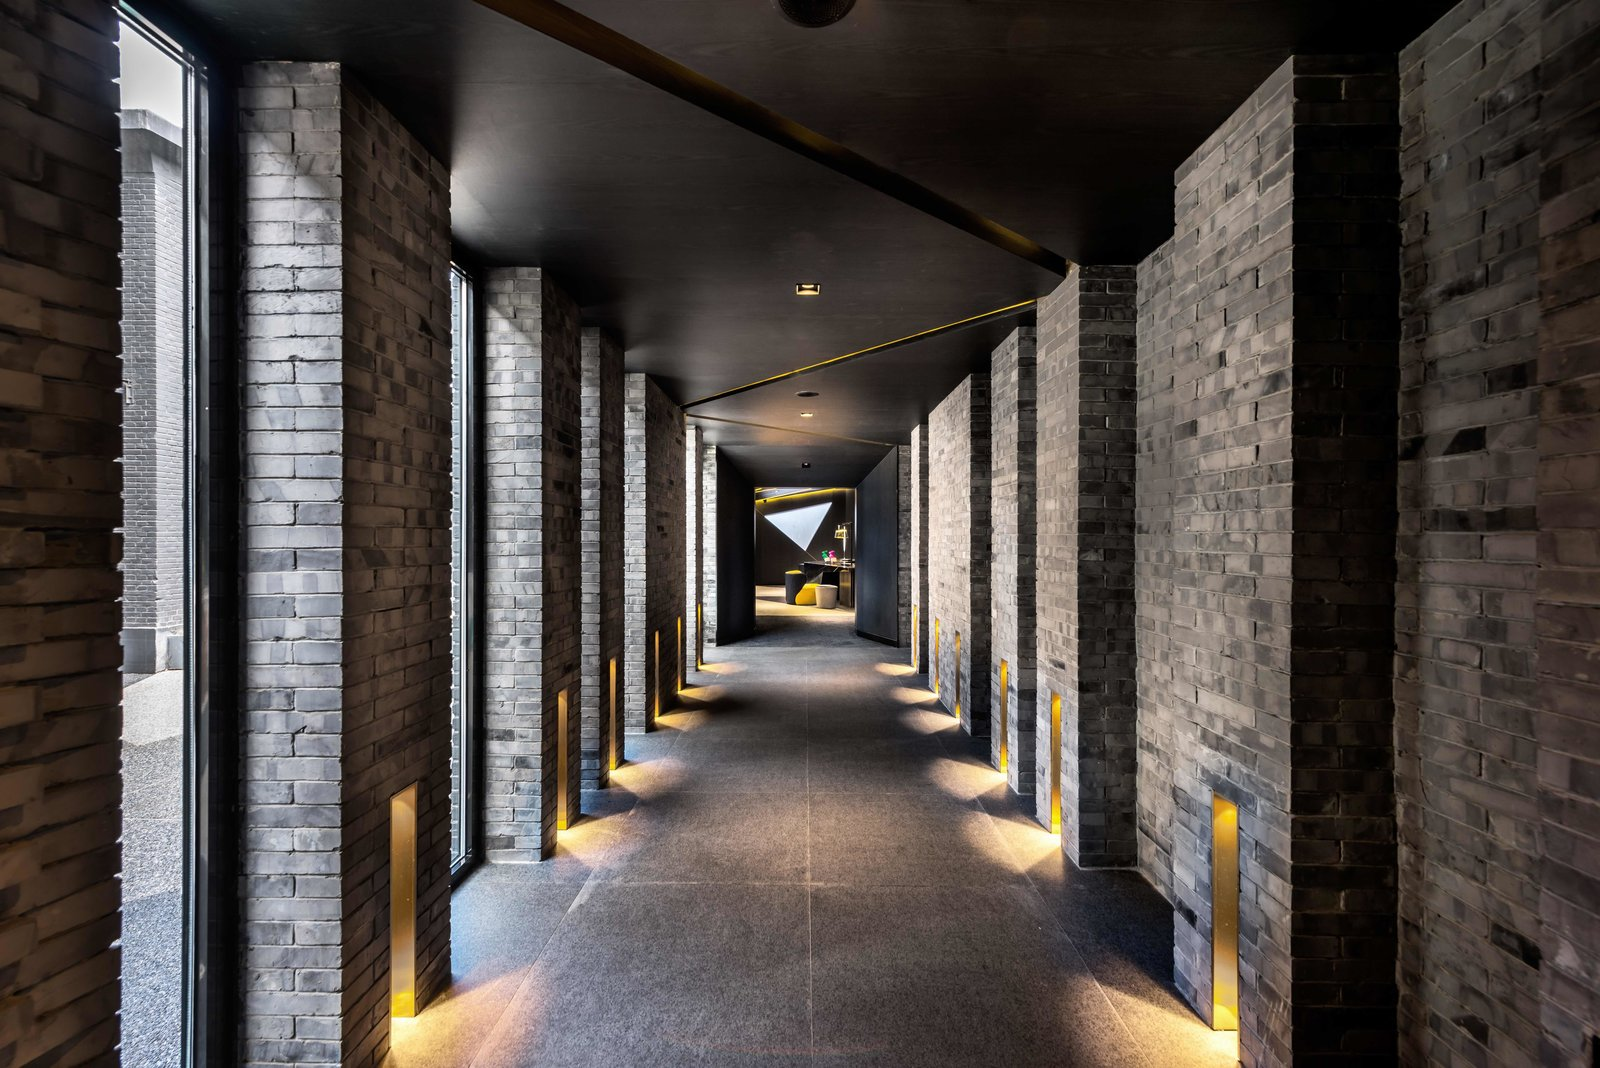 Hallway and Cement Tile Floor  Vue Hotel Hou Hai from A Hotel in Beijing Fuses Chinese History With Cosmopolitan Style